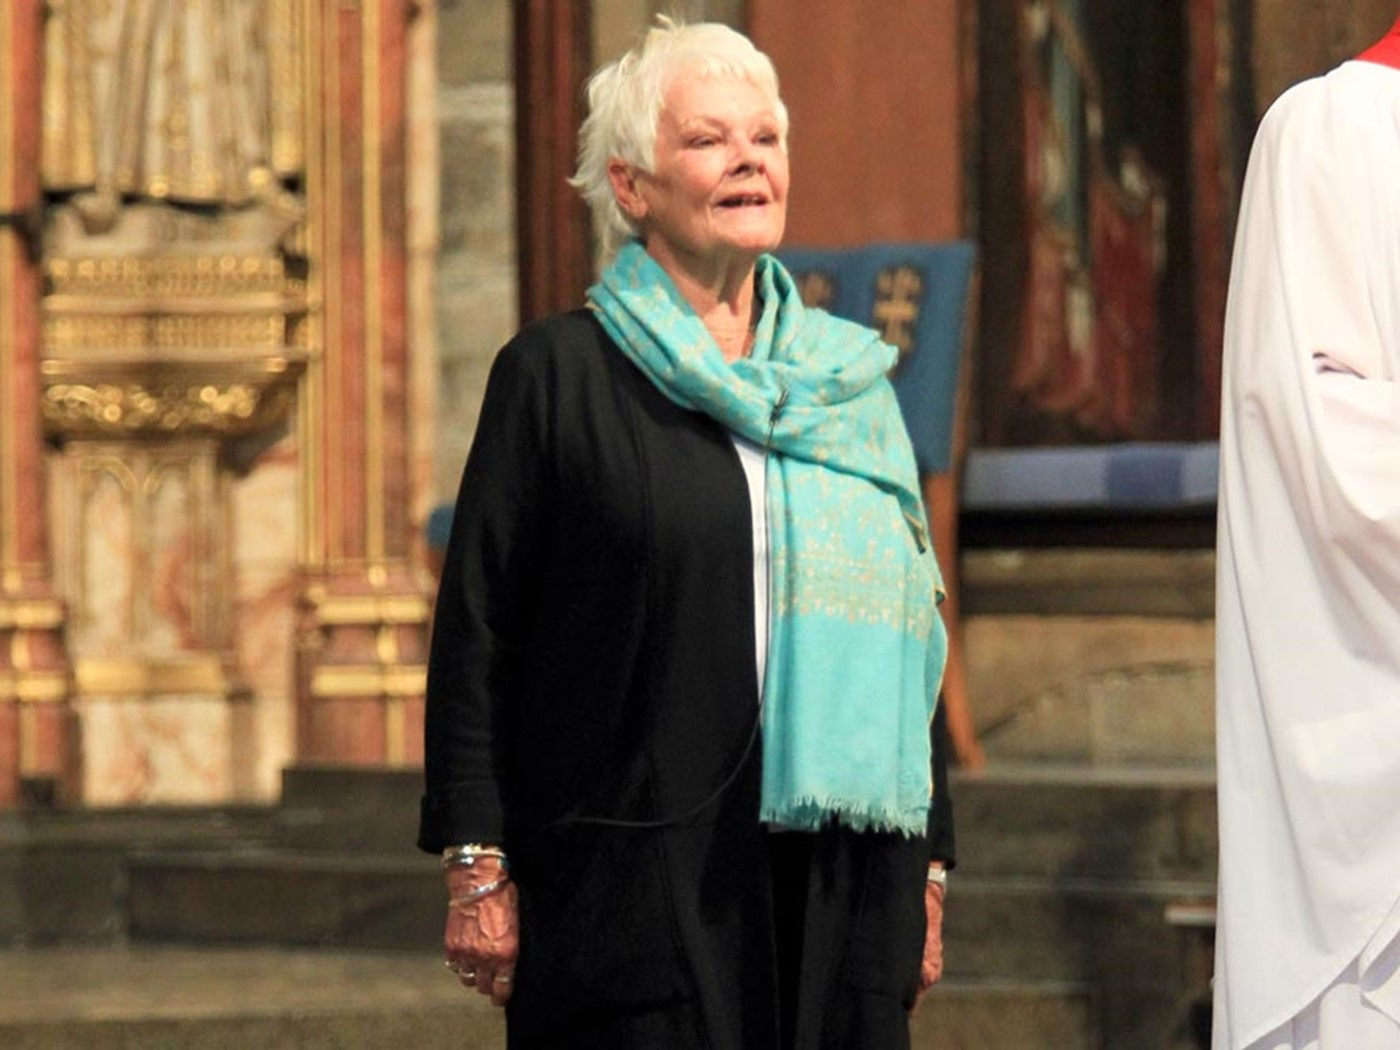 Dame Judi Dench reads from Antony and Cleopatra, Act V